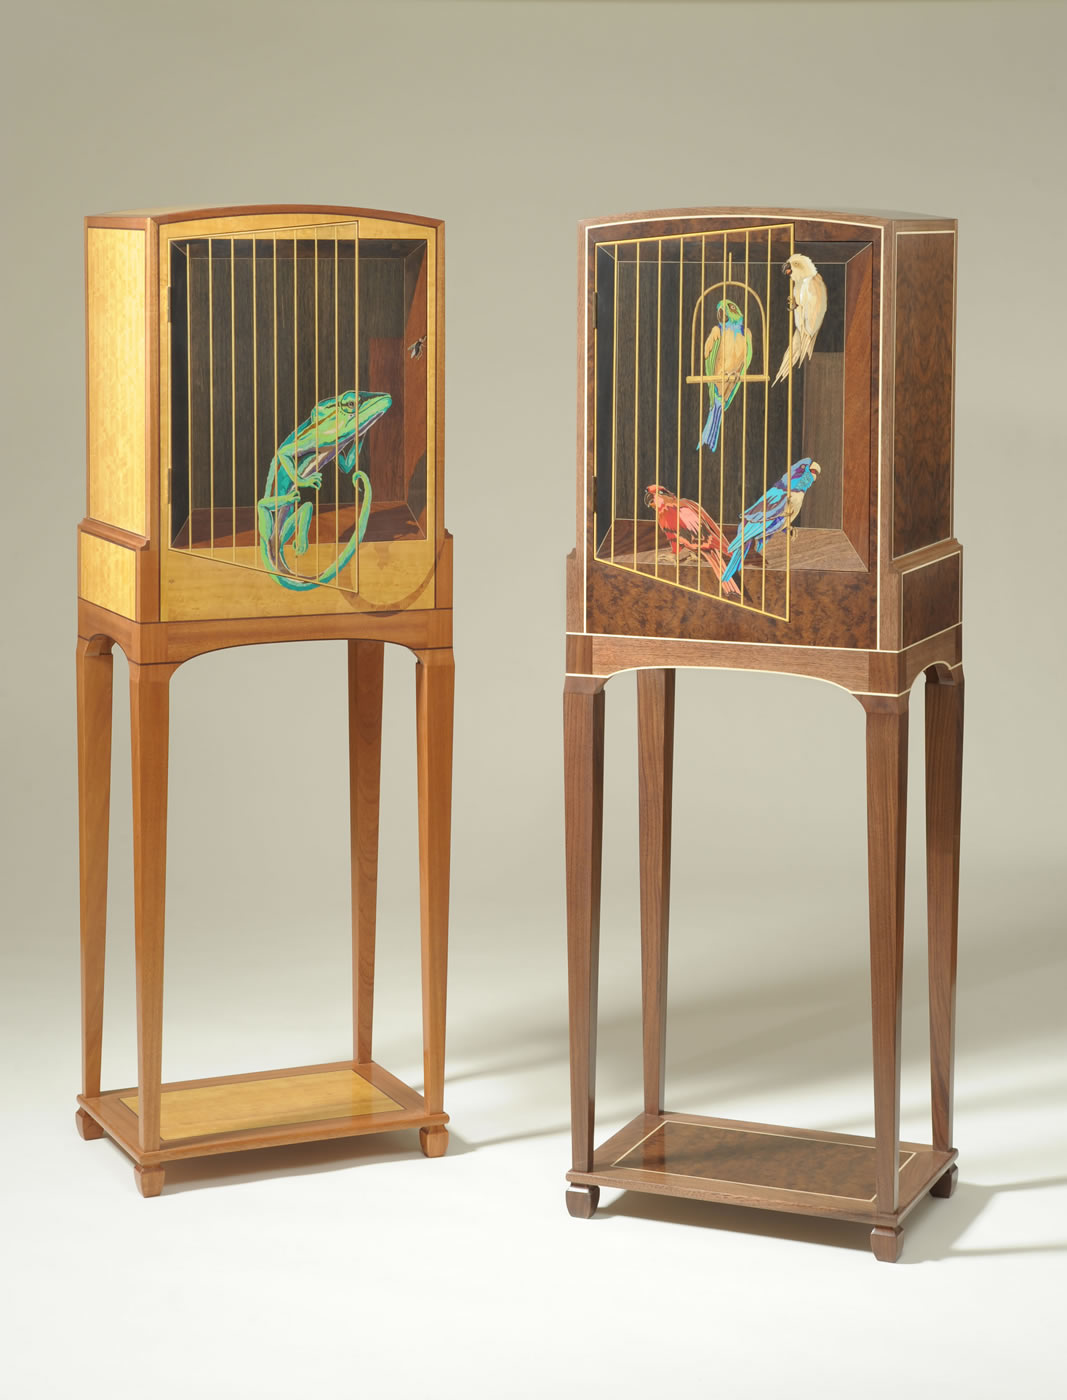 "Parrots: Walnut, Walnut Burl, Holly Marquetry: Wood, Brass, Mother-of-pearl, And Stone  58"" H X 19"" W X 13 ½"" D Chameleon: Sapele, Satinwood, Katalox Marquetry: Wood, Stone, And Shell"